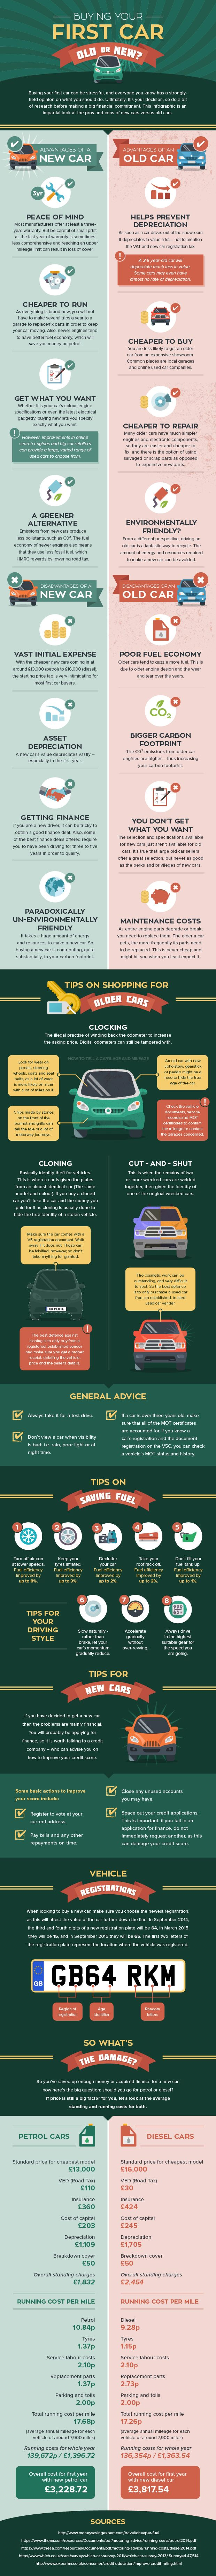 Buying your First Car Old or New?